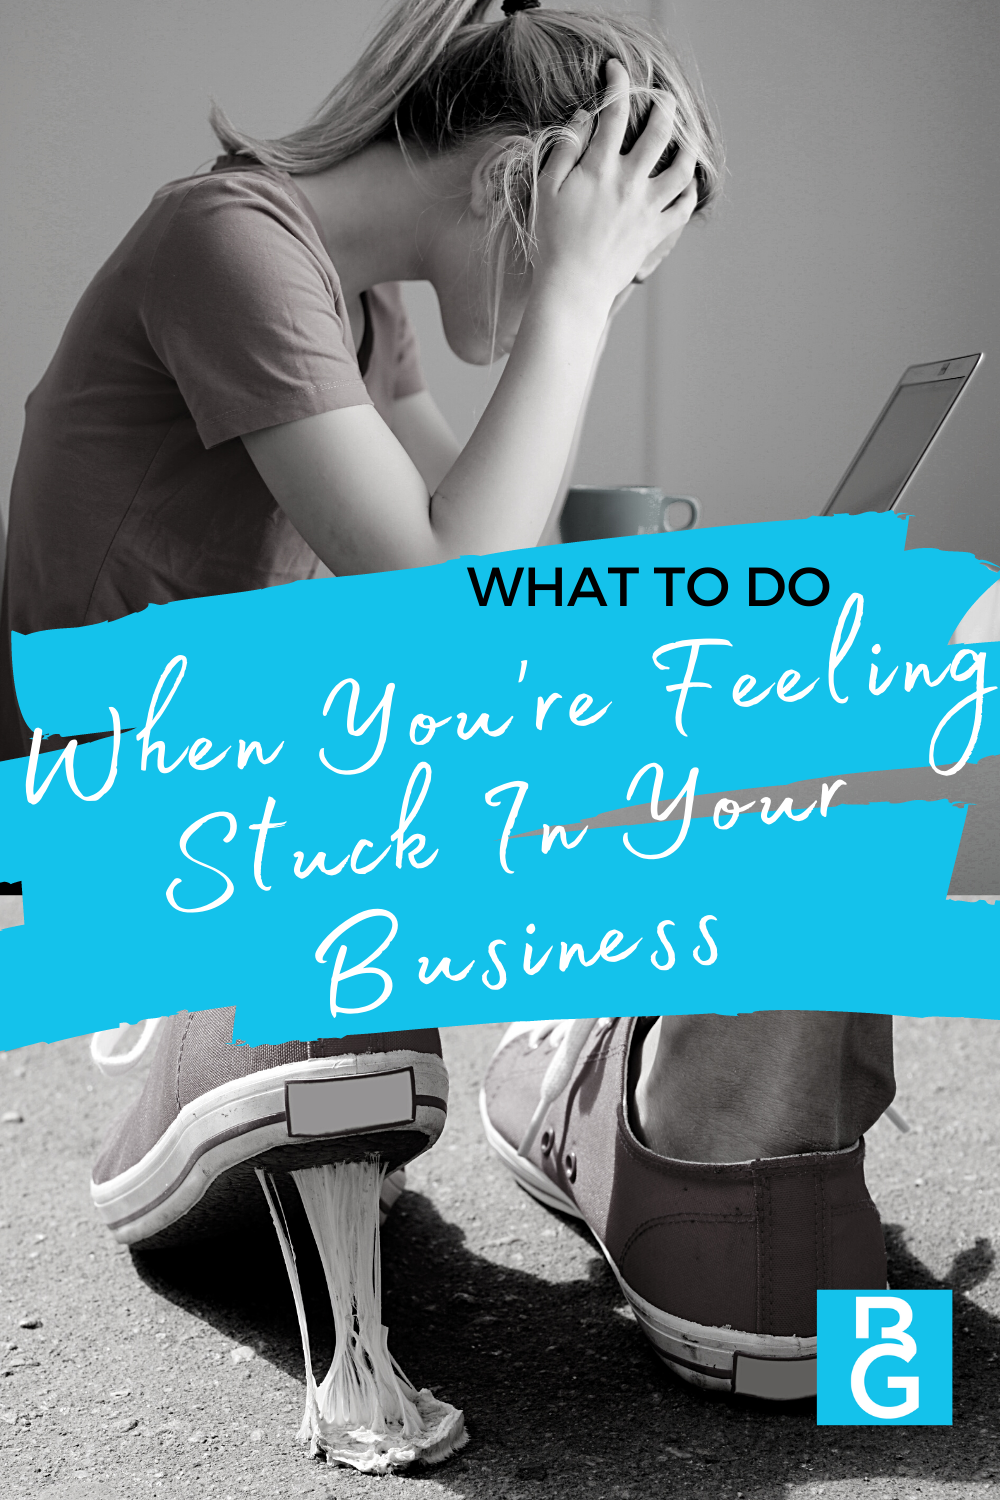 What do do when you're feeling stuck in your business